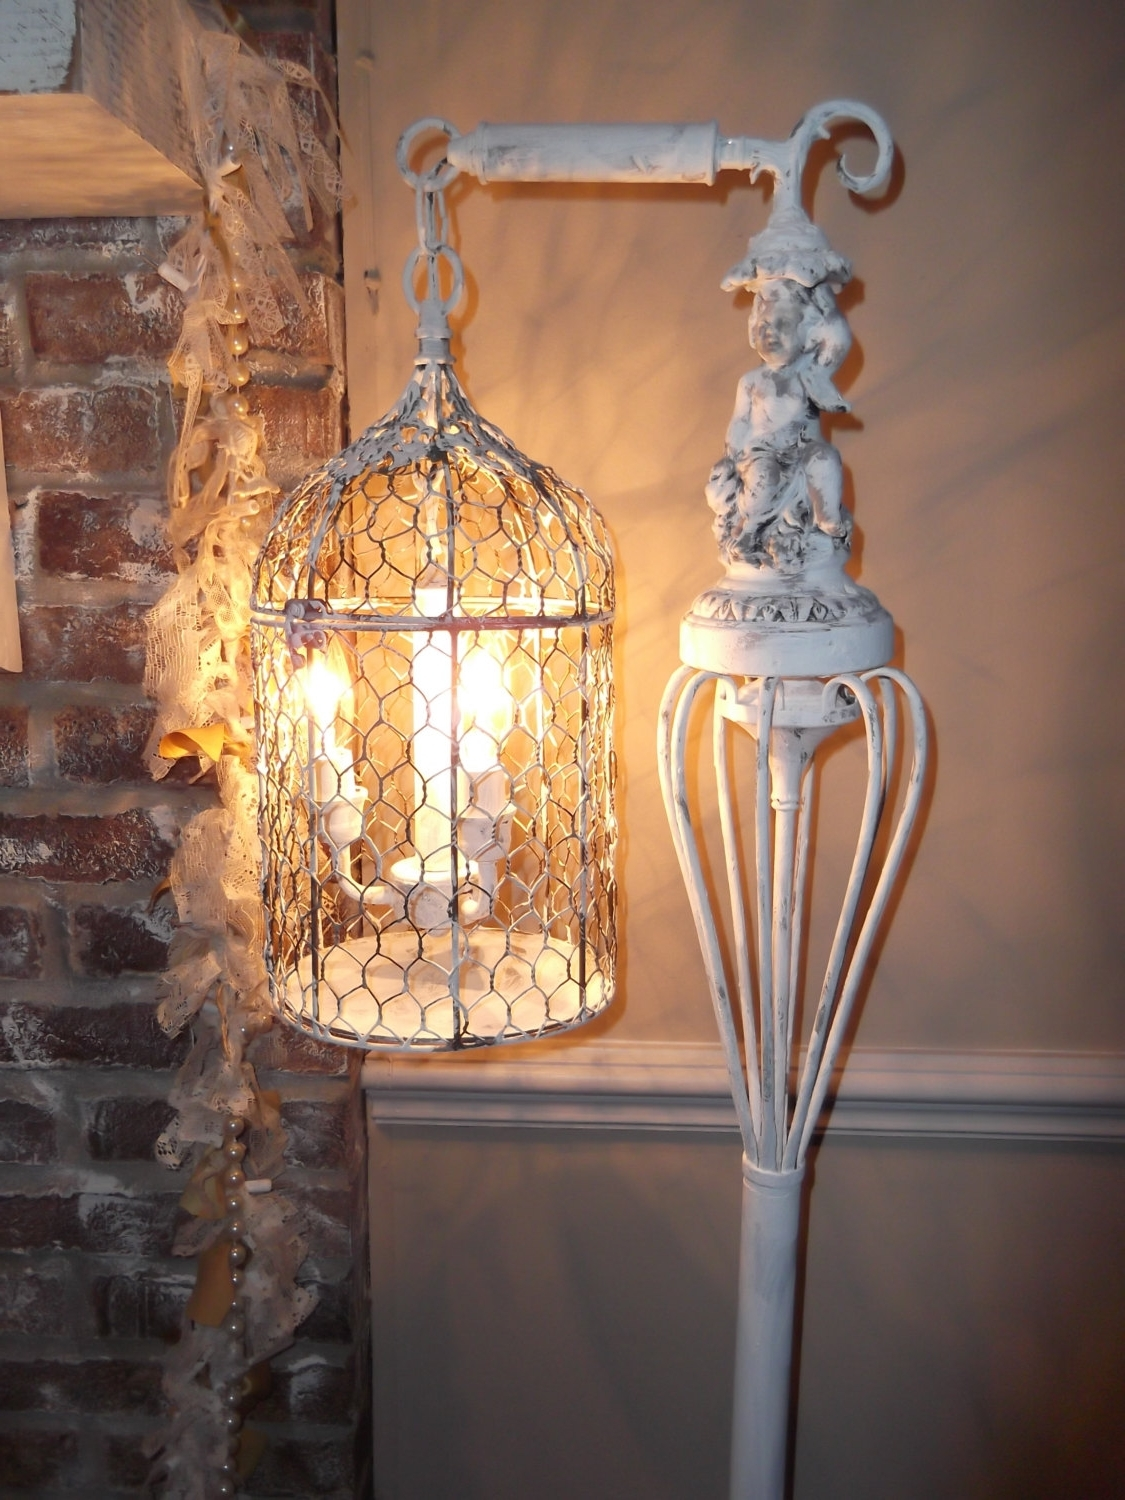 Fashionable Country Chic Chandelier Inside Bird Cage Chandelier Floor Lamp ,vintage Chandelier Bird Cage Light (View 14 of 20)